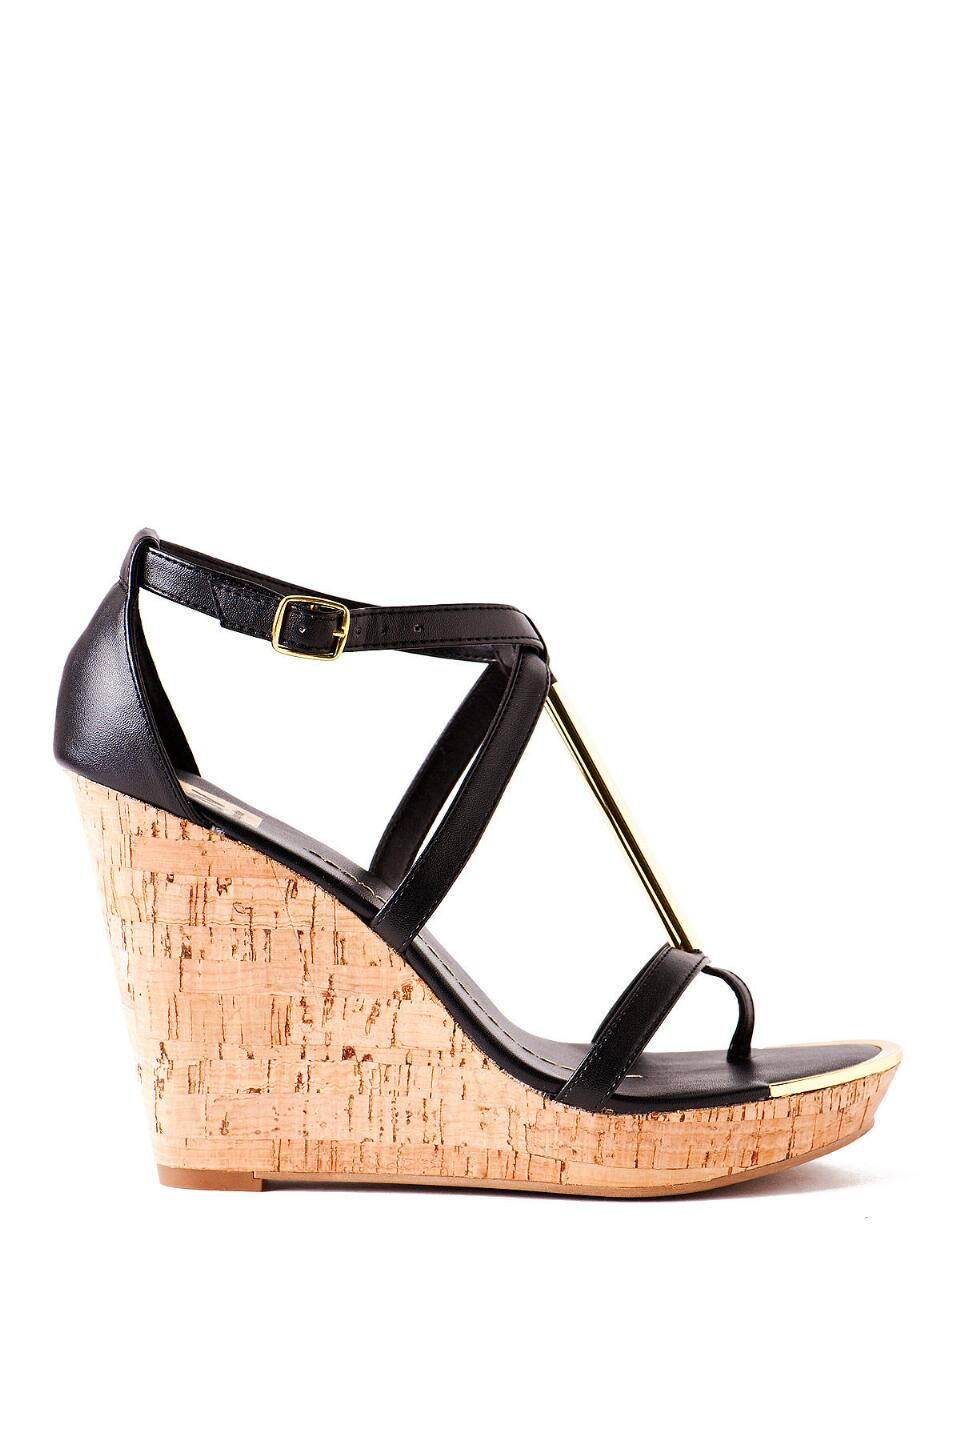 DV by Dolce Vita Shoes, Tremor Cork Wedge in Black-  blk-clright